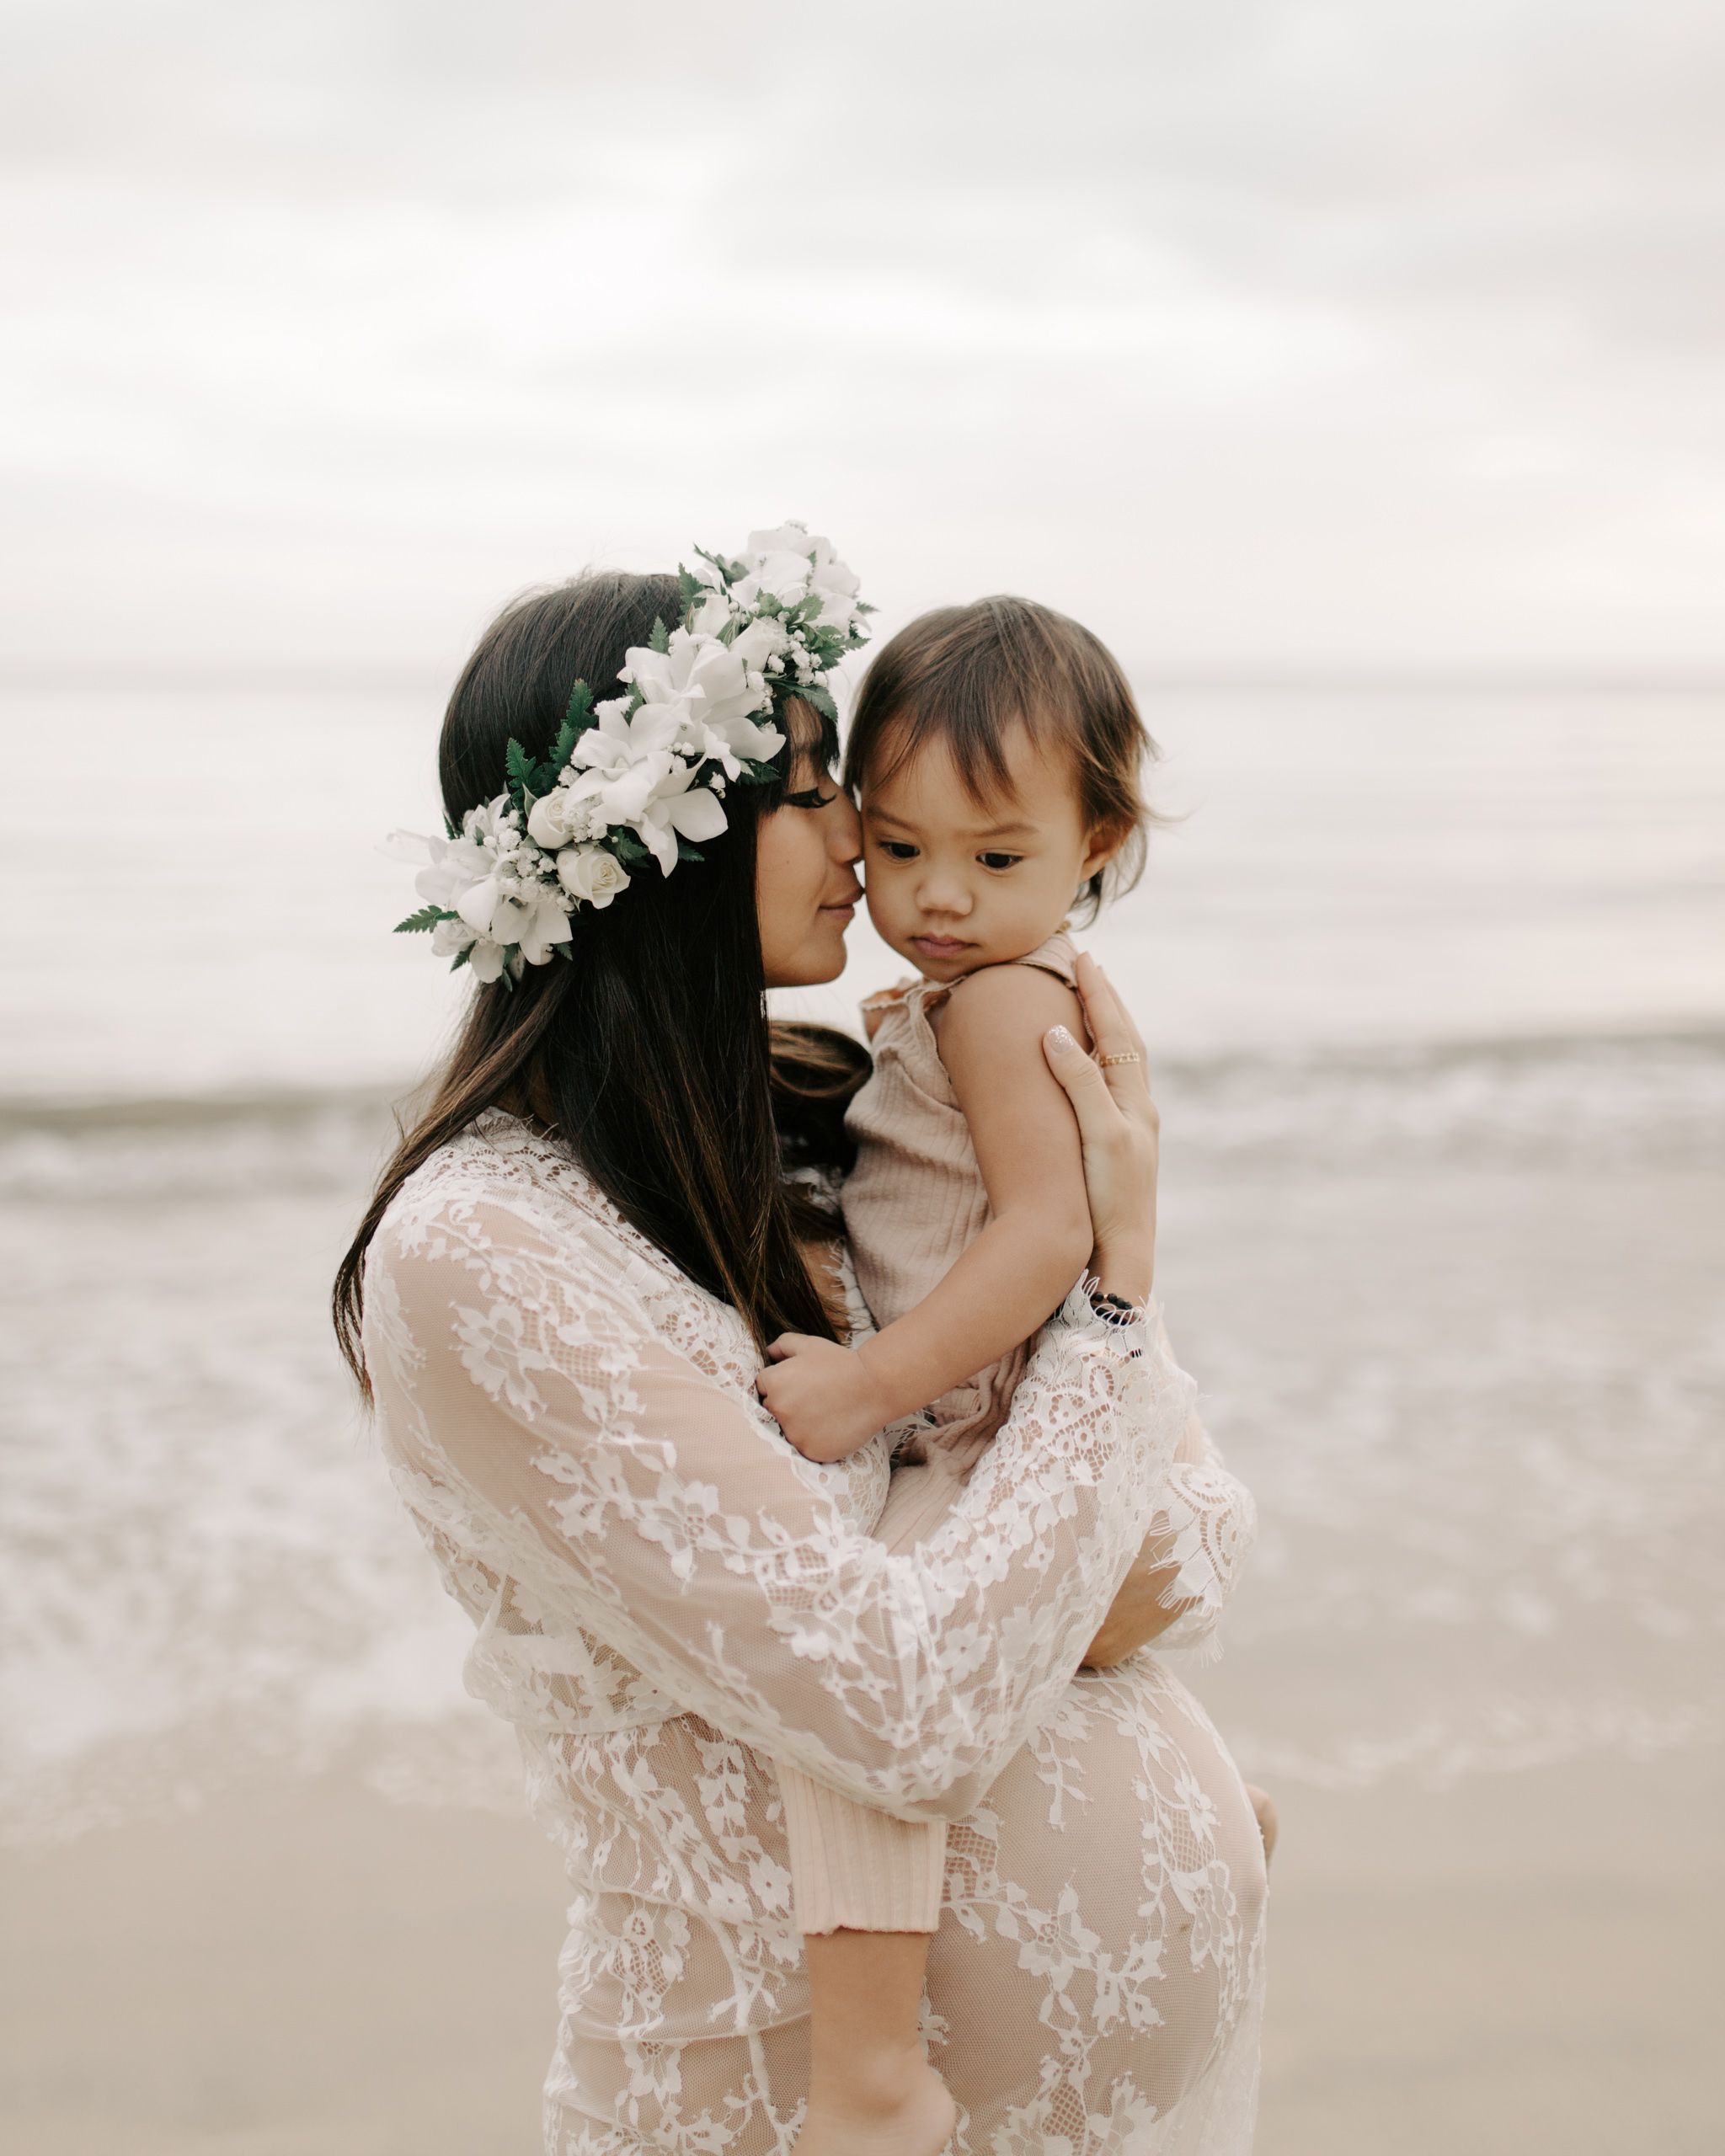 Beautiful Maternity Photo of a Mom With Her Daughter by Hawaii Family Photographer Desiree Leilani